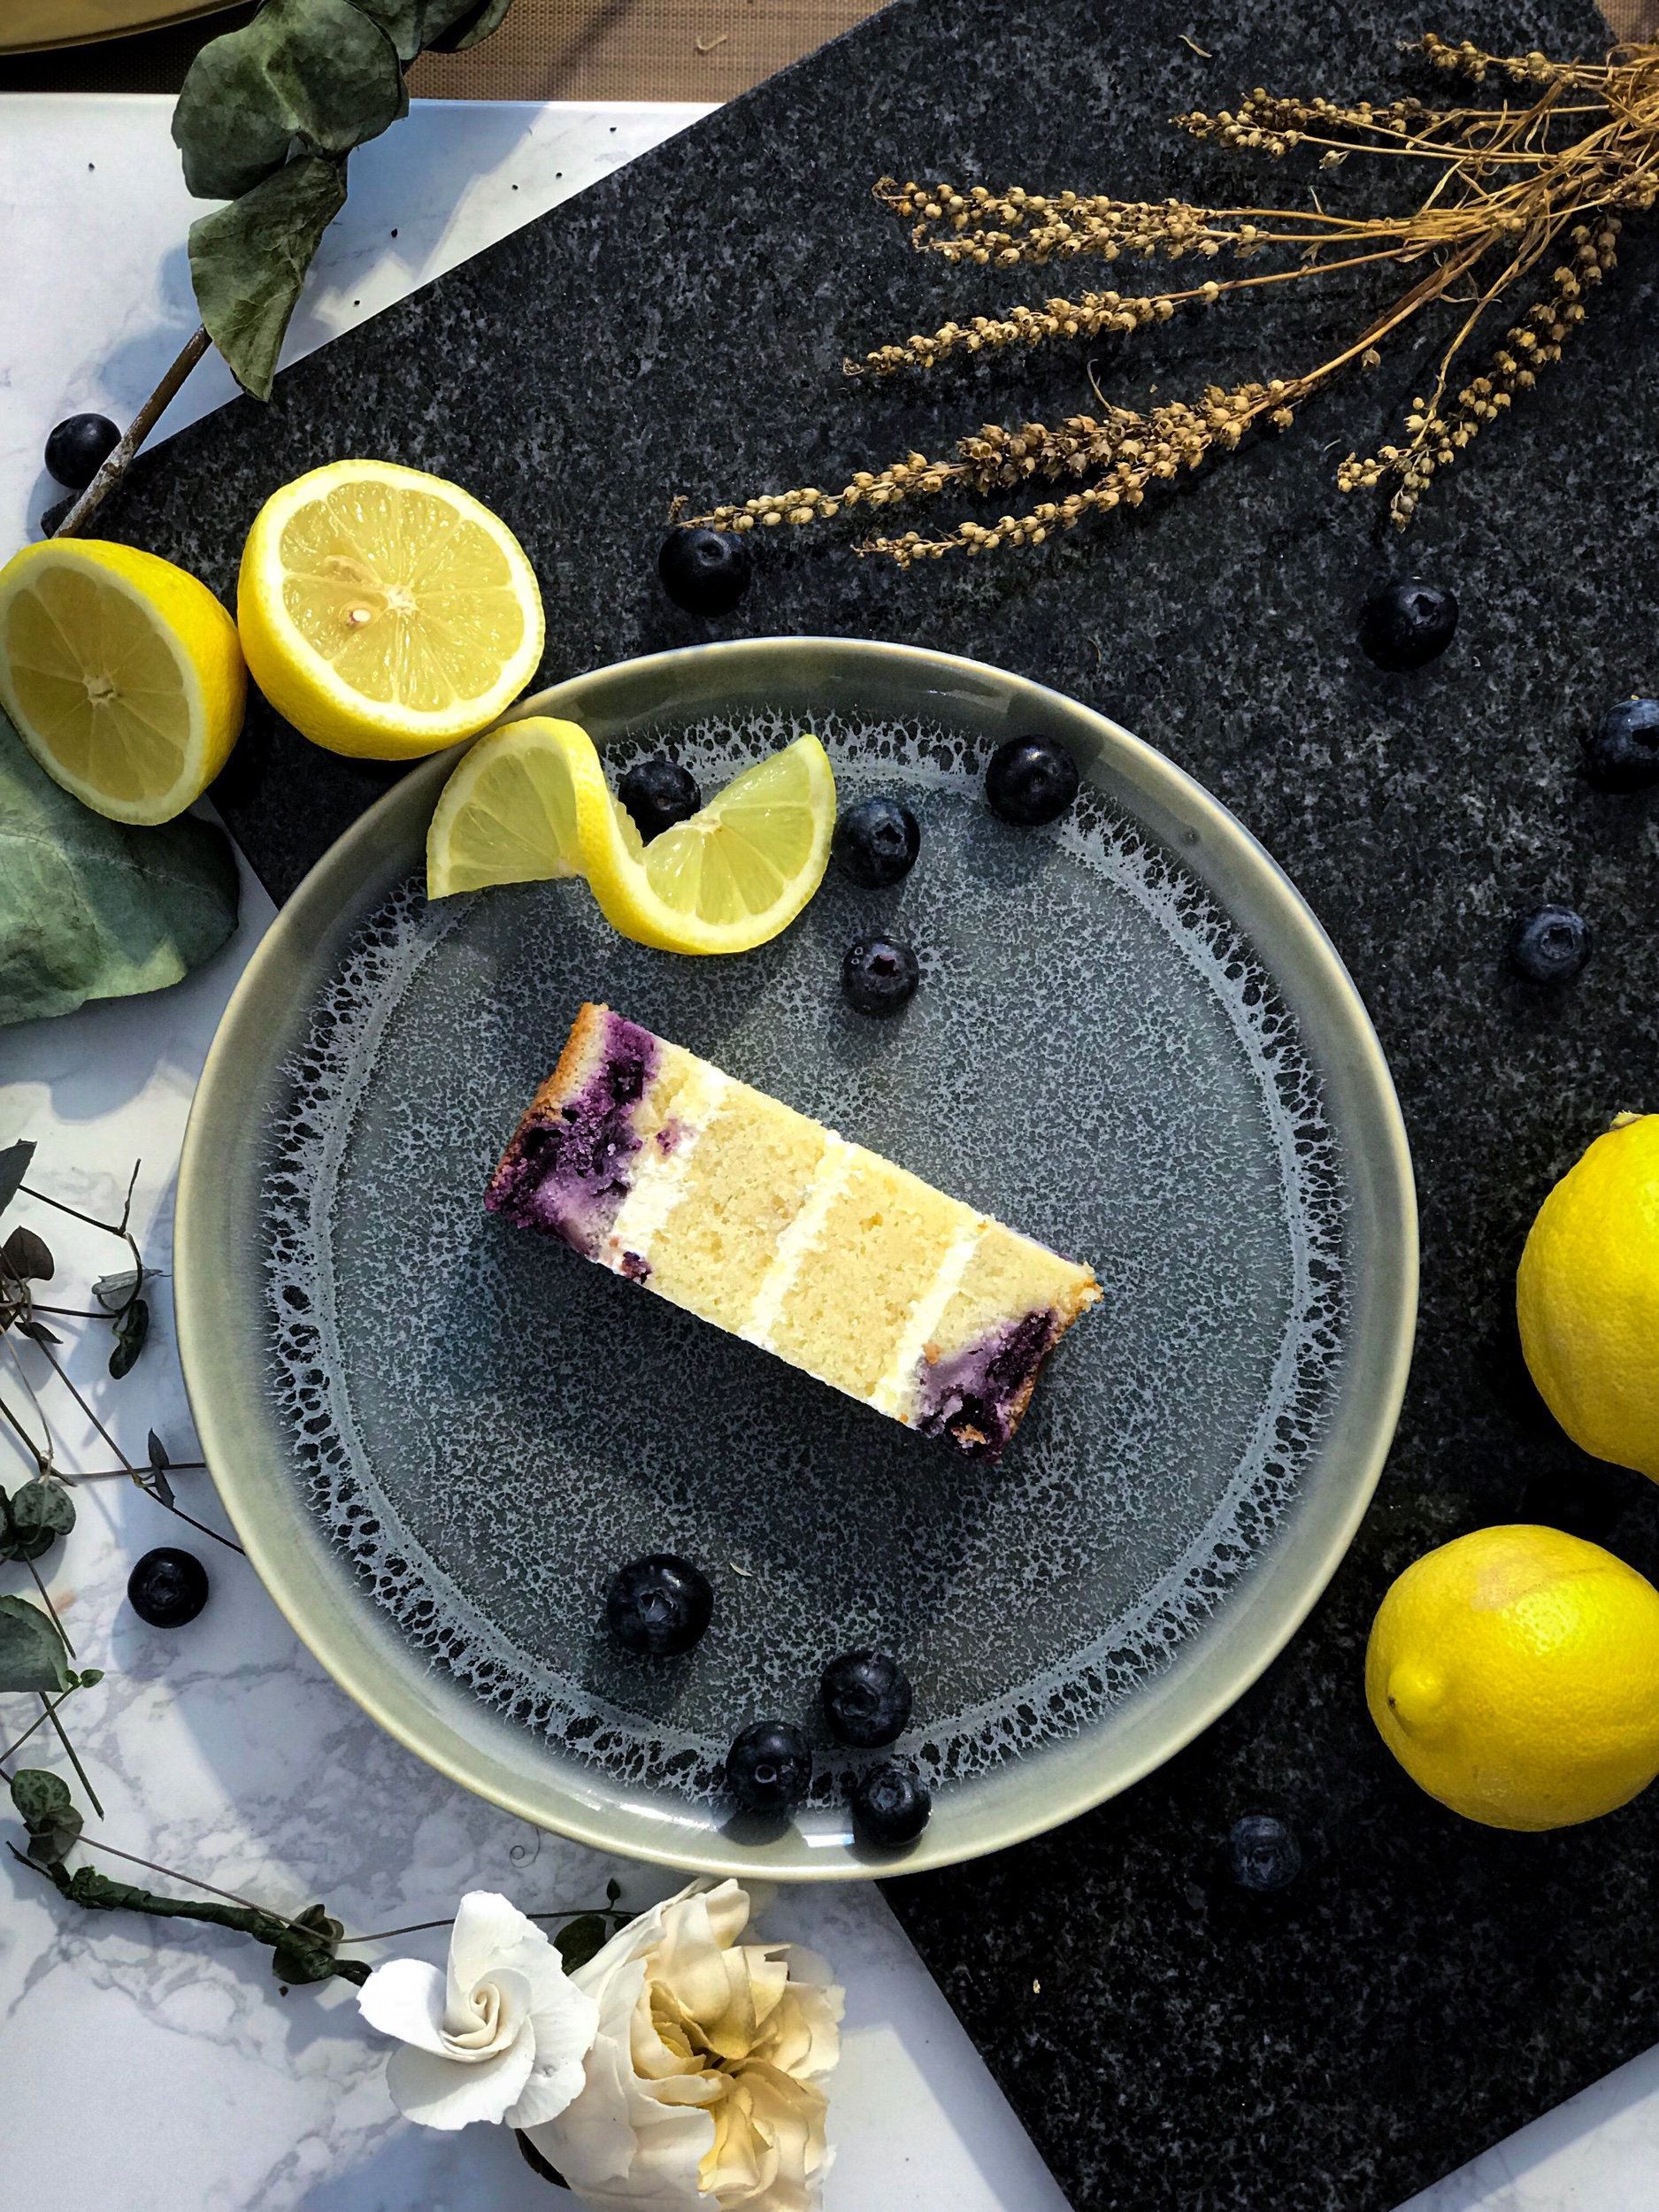 BLUEBERRY CHEESECAKE  love a light textured cake? This one's for you. Lemon & wild blueberry cake with a cream cheese filling in between the fluffy layers cake.